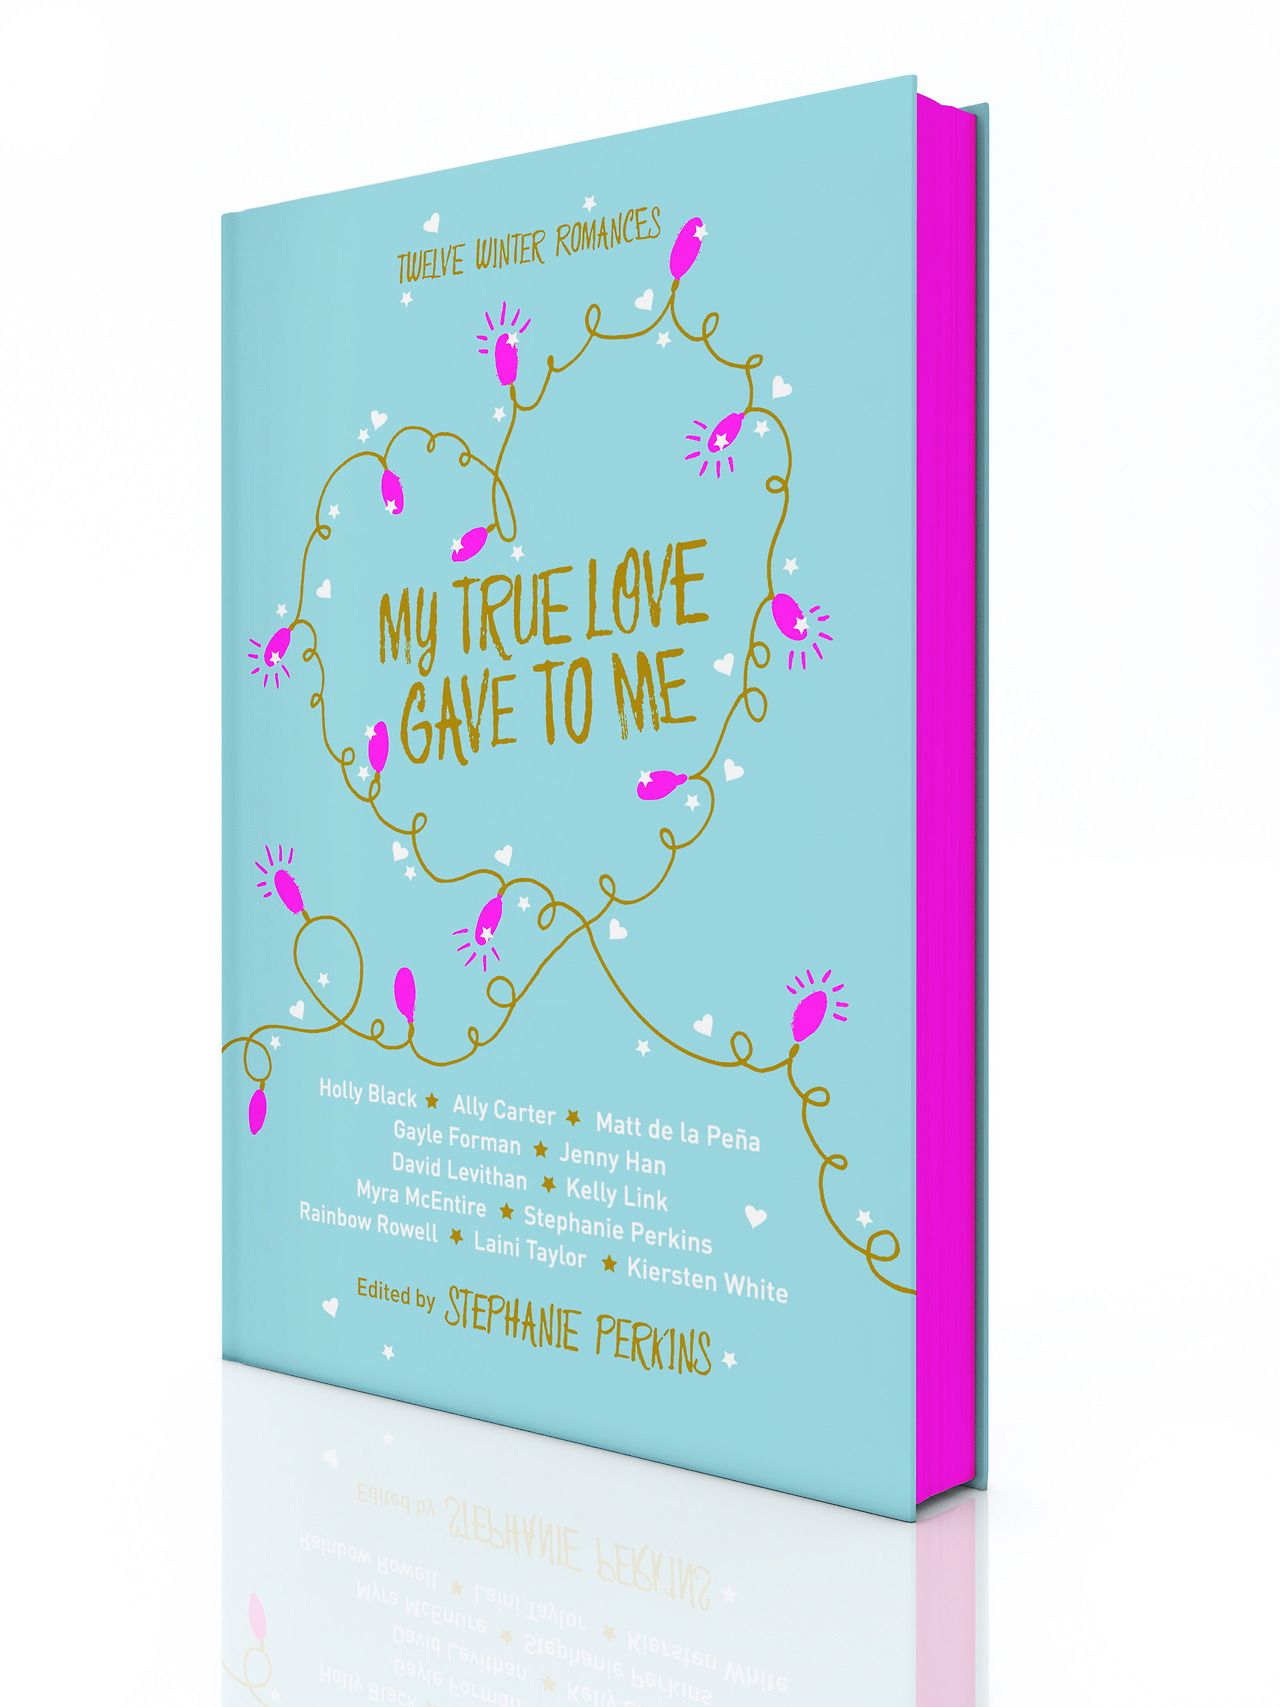 My True Love Gave to Me: so many stories by so many fave authors!! Holly Black! Ally Carter! Matt de la Peña! Gayle Forman! Jenny Han! David Levithan! Kelly Link! Myra McEntire! Rainbow Rowell! Laini Taylor! Kiersten White! Edited by (and with an additional story by) Stephanie Perkins!